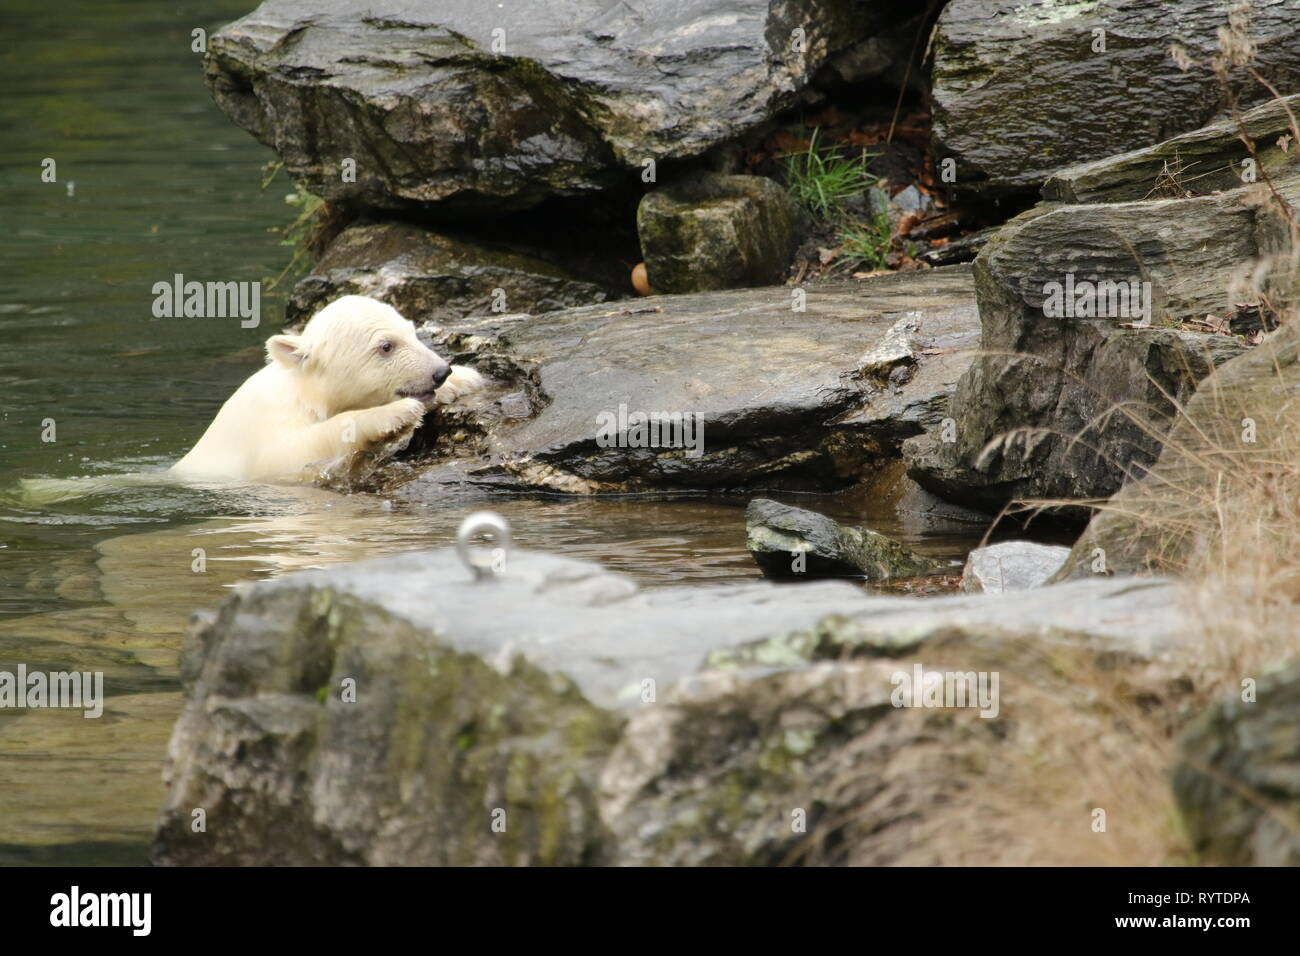 Berlin, Germany, March,15,2019. The female polar bear cub. Baby polar bear in Berlin zoo must first breath.On 1 December 2018, at 2:33 pm, polar bear Tonja (9) gave birth in Tierpark Berlin to the female guinea pig-sized female pup. Credit: SAO Struck/Alamy Live News - Stock Image